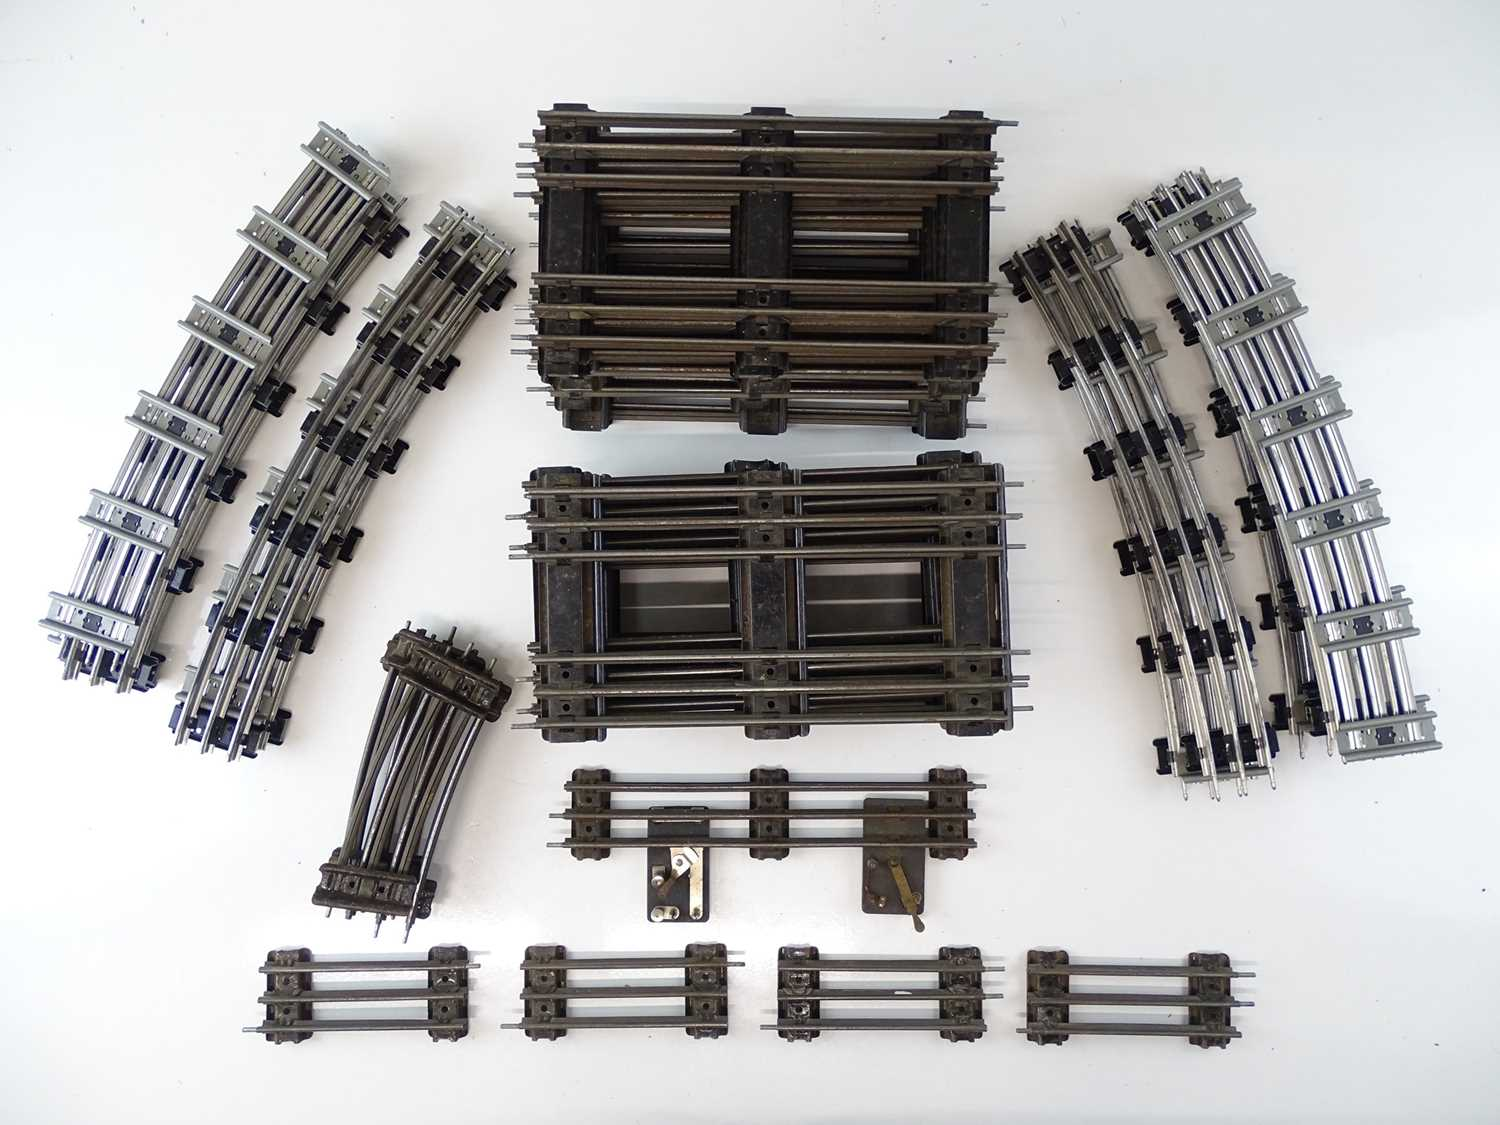 A large quantity of HORNBY SERIES O Gauge 3-rail track mostly straight track sections including